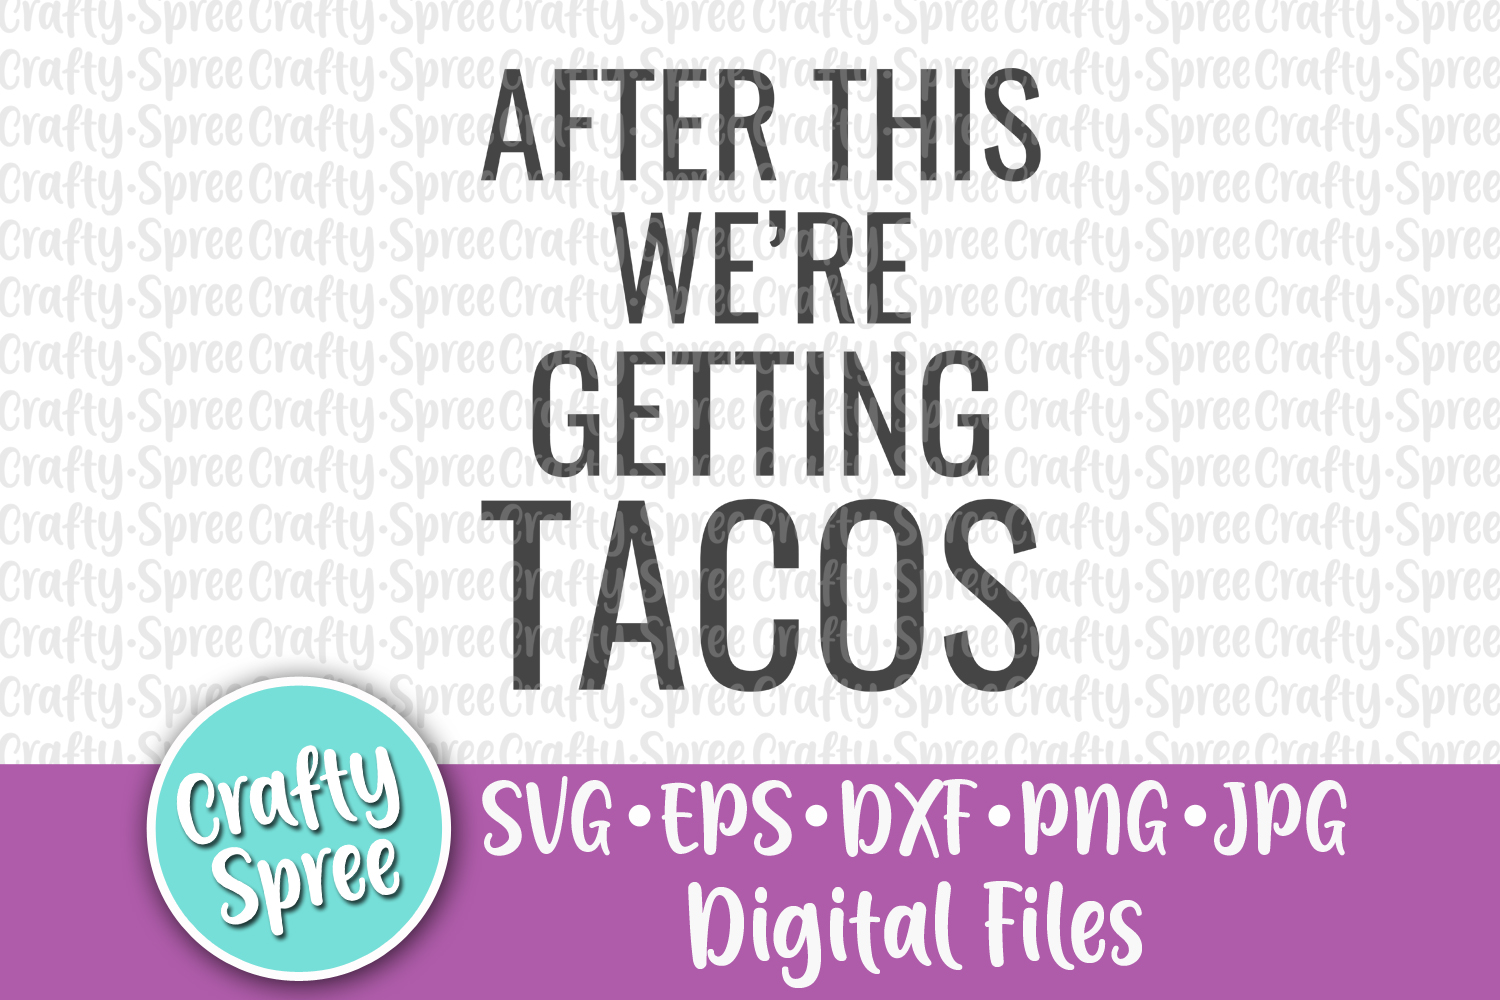 After This We're Getting Tacos SVG PNG DXF Cut File example image 2